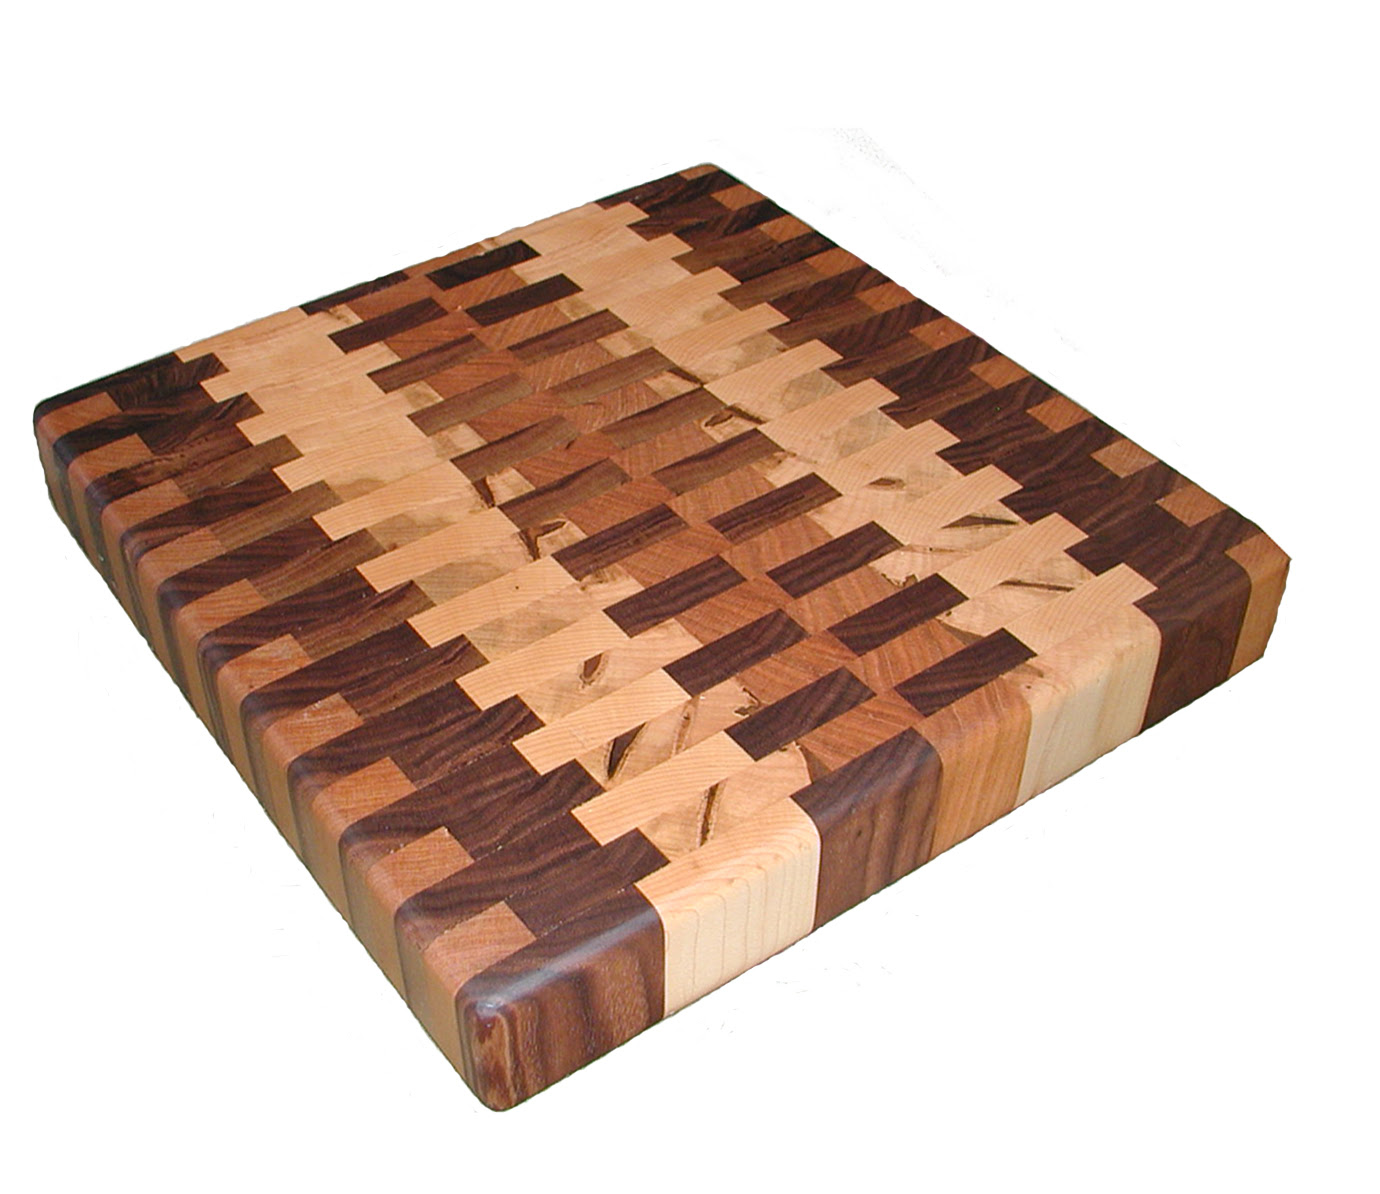 woodworking projects cutting board | outdoor woodworking